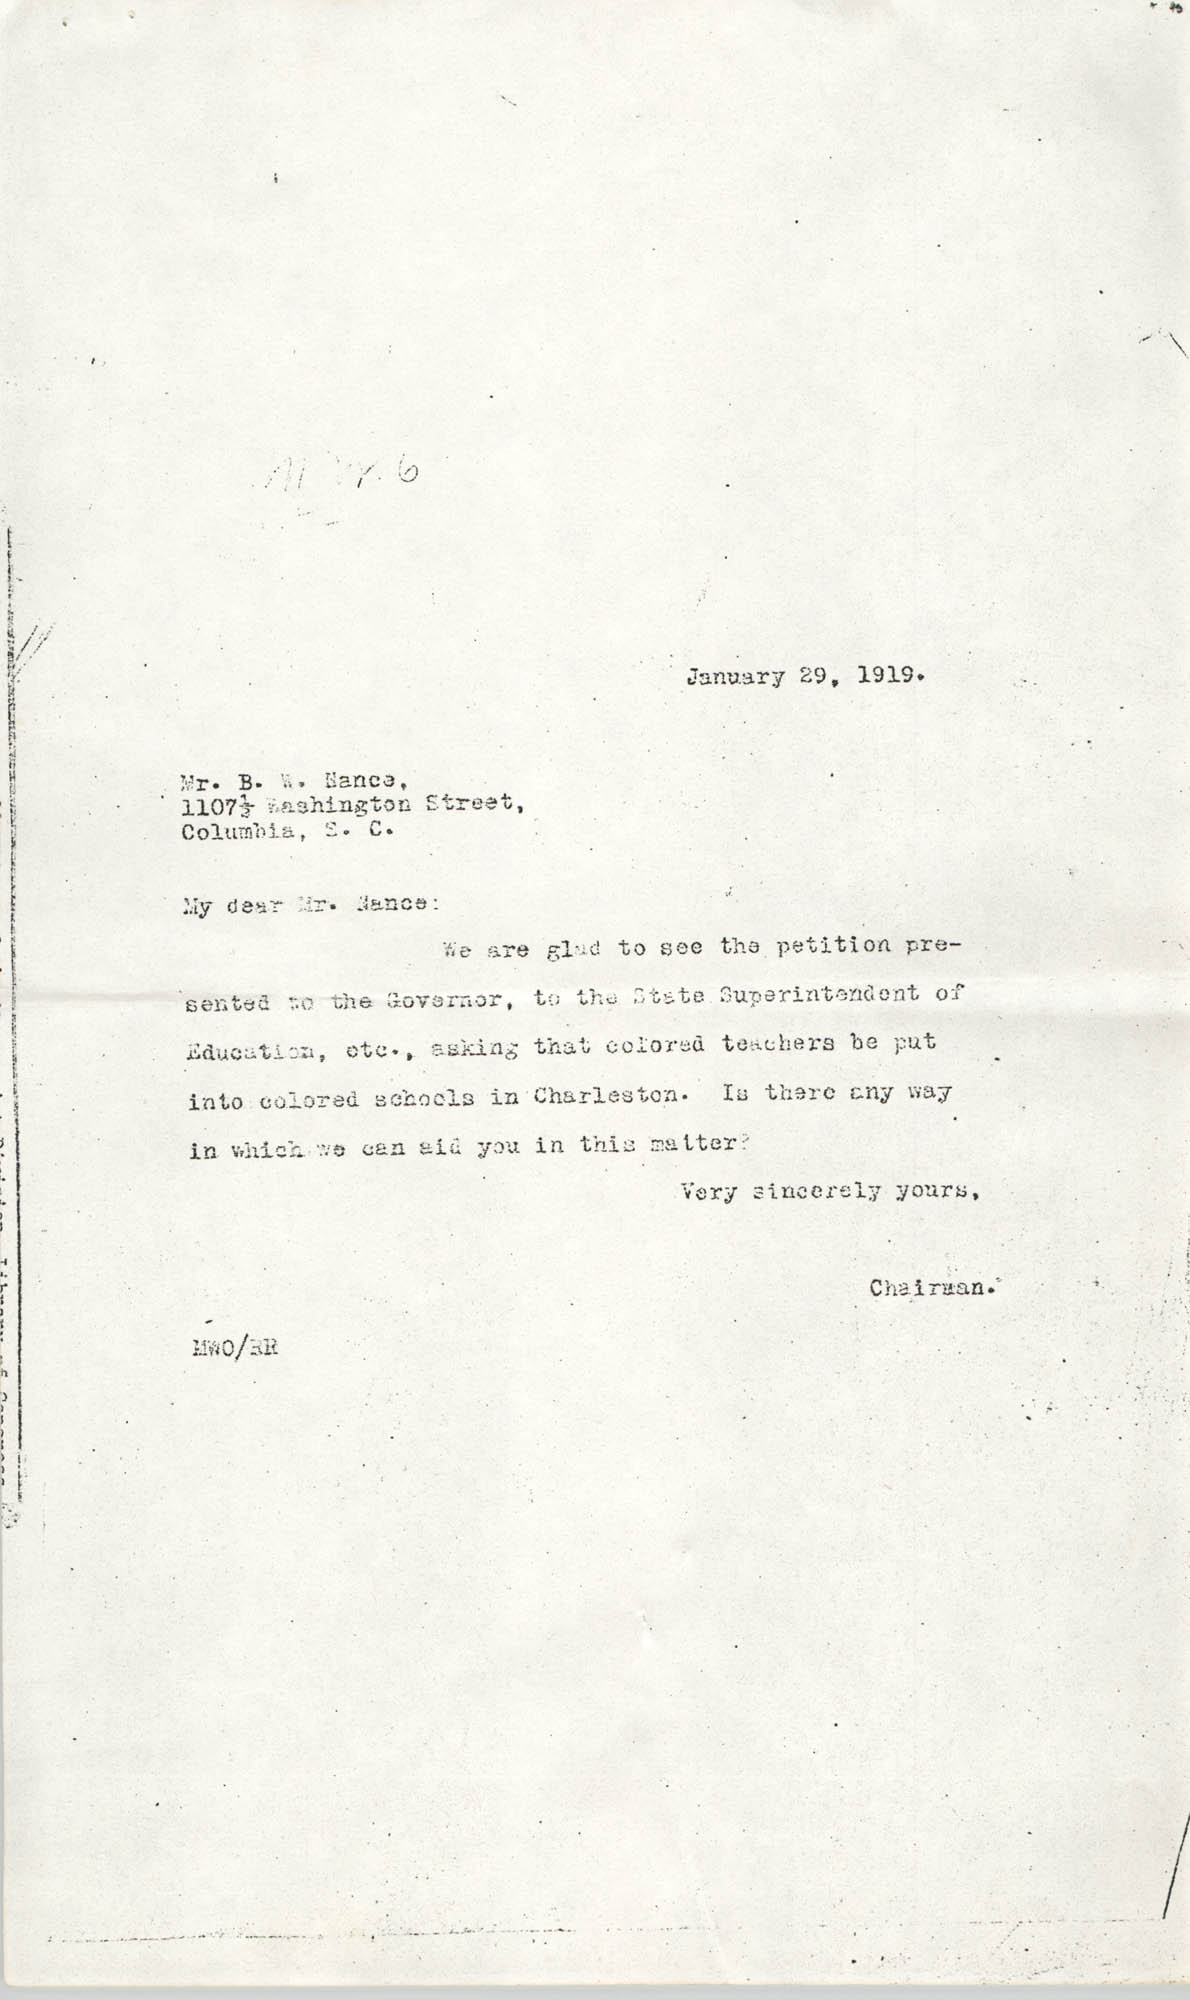 Letter to Butler W. Nance, January 29, 1919